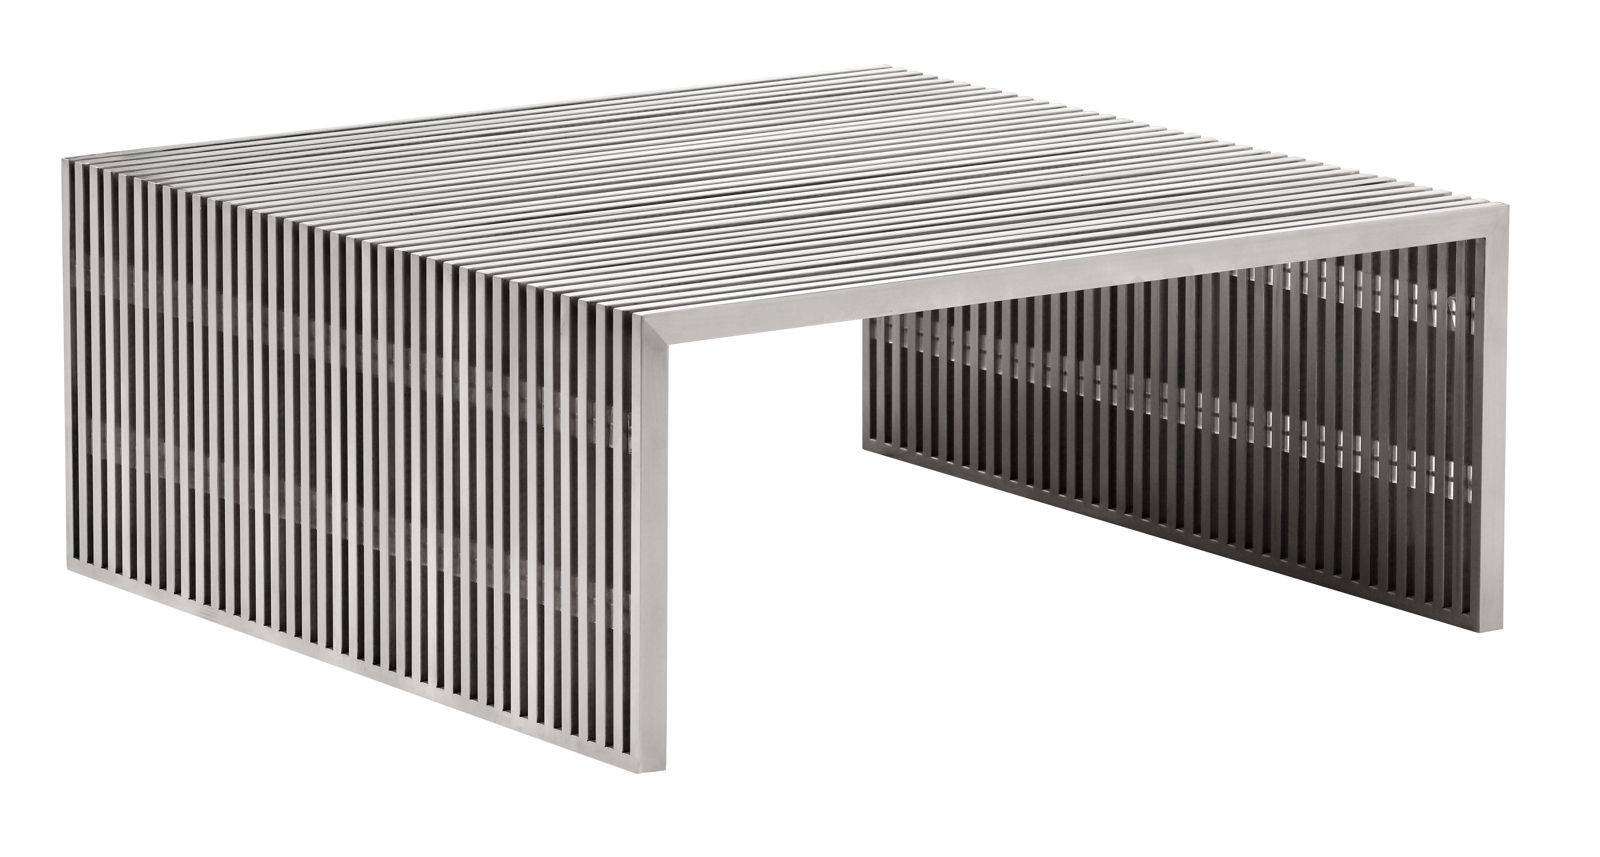 Novel Square Coffee Tablezuo Modern | Modern Coffee Table inside Square Coffee Table Modern (Image 14 of 15)